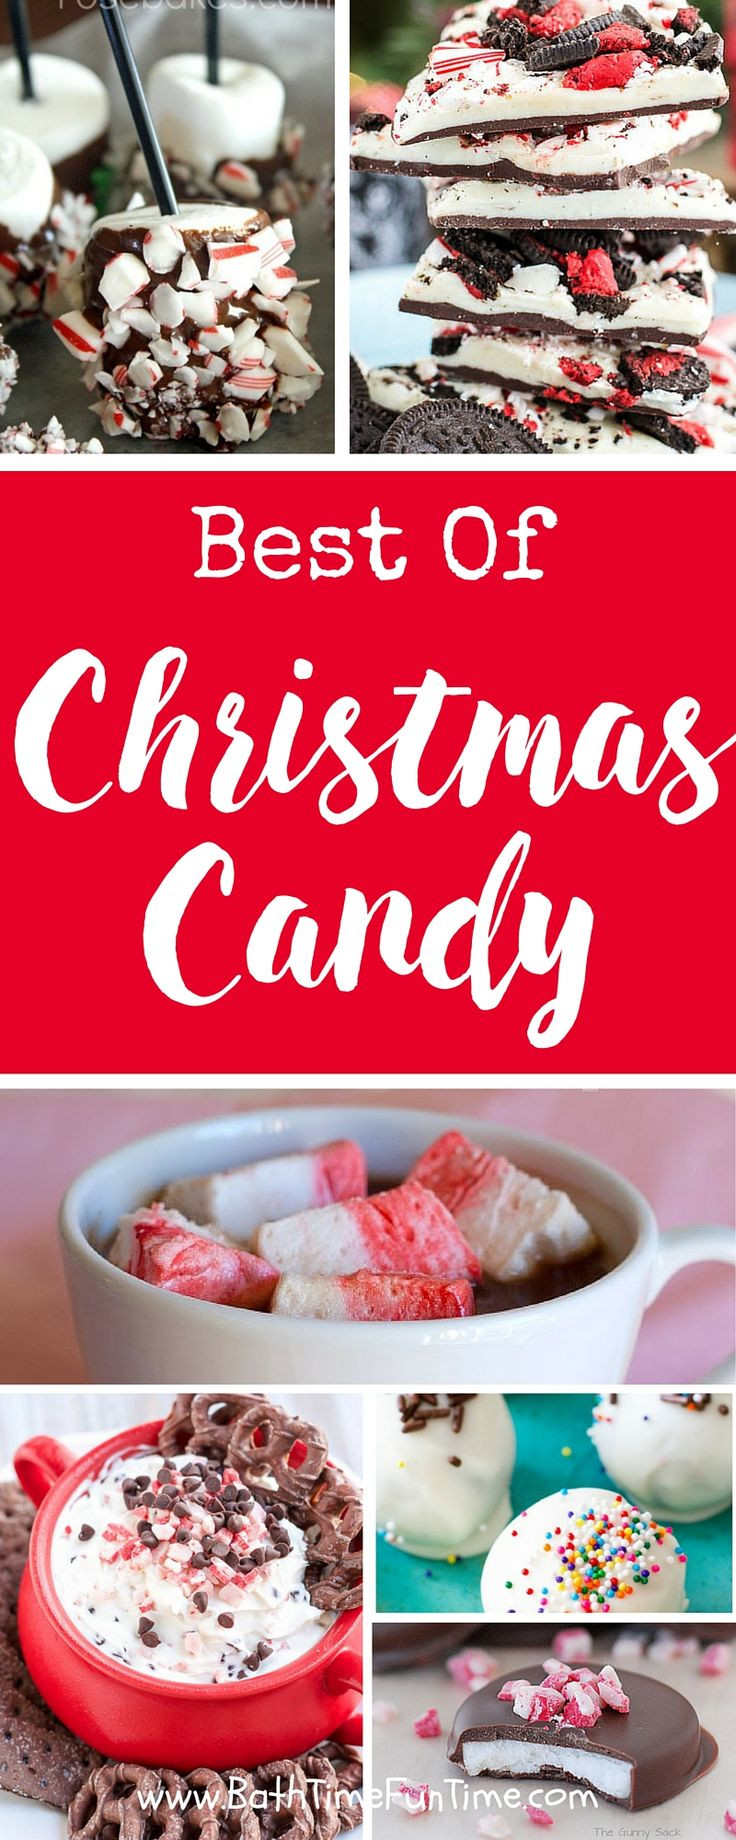 Best Christmas Candy  1000 images about Best of BathTimeFunTime on